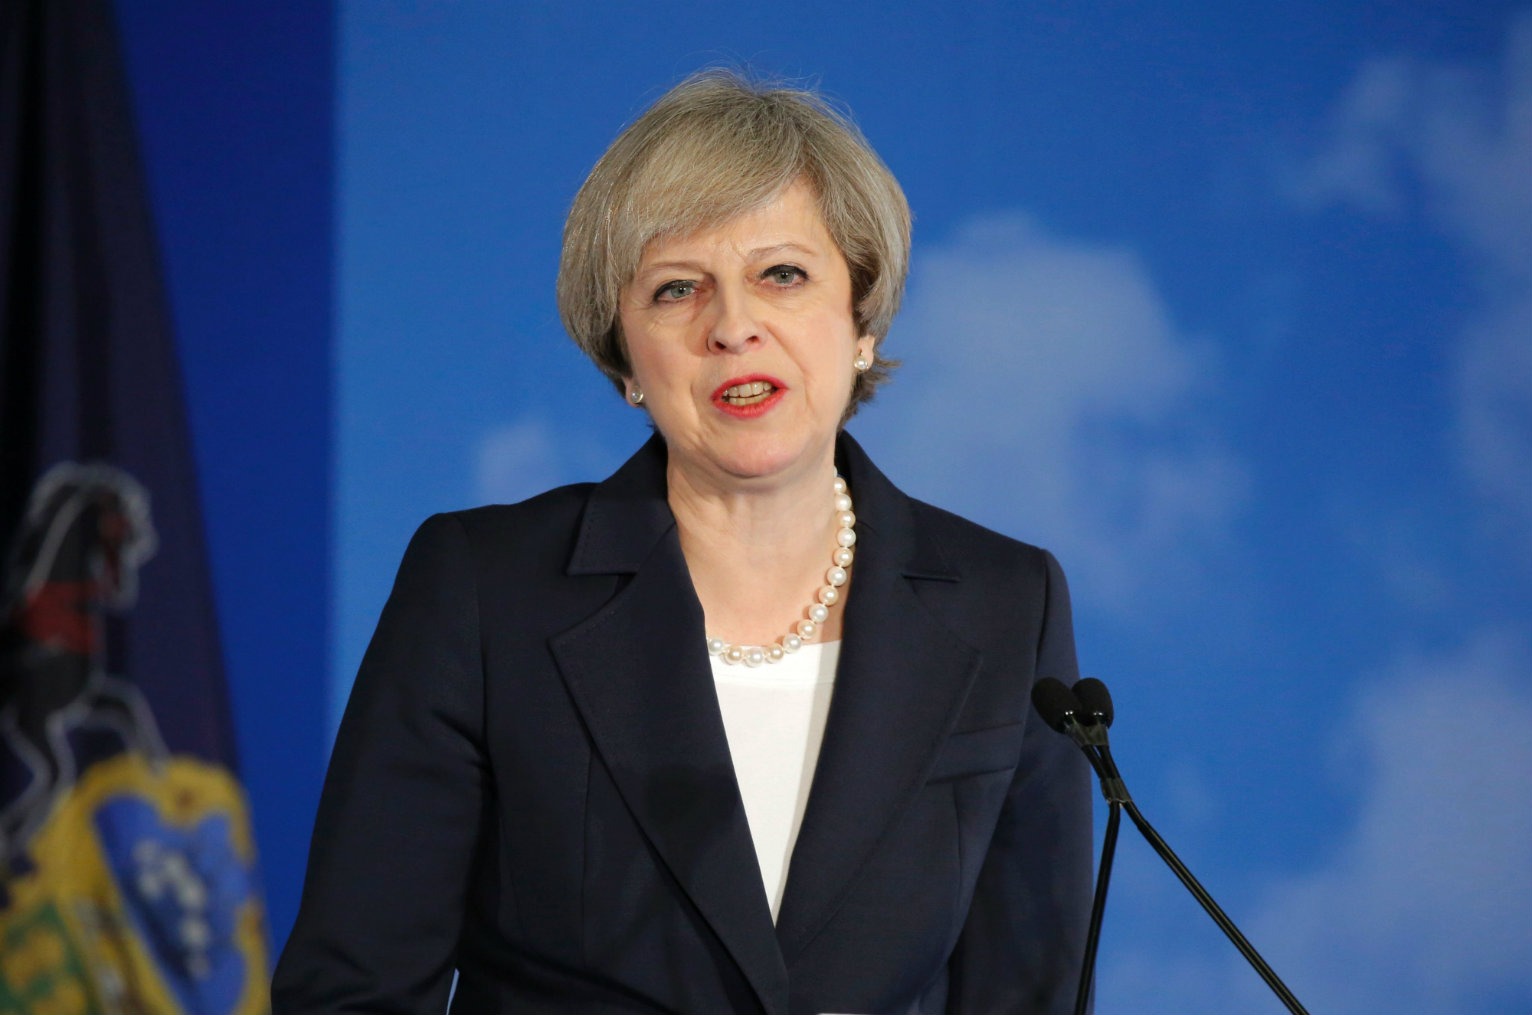 Theresa May Lauds Trump Warns Him Not To Disengage With